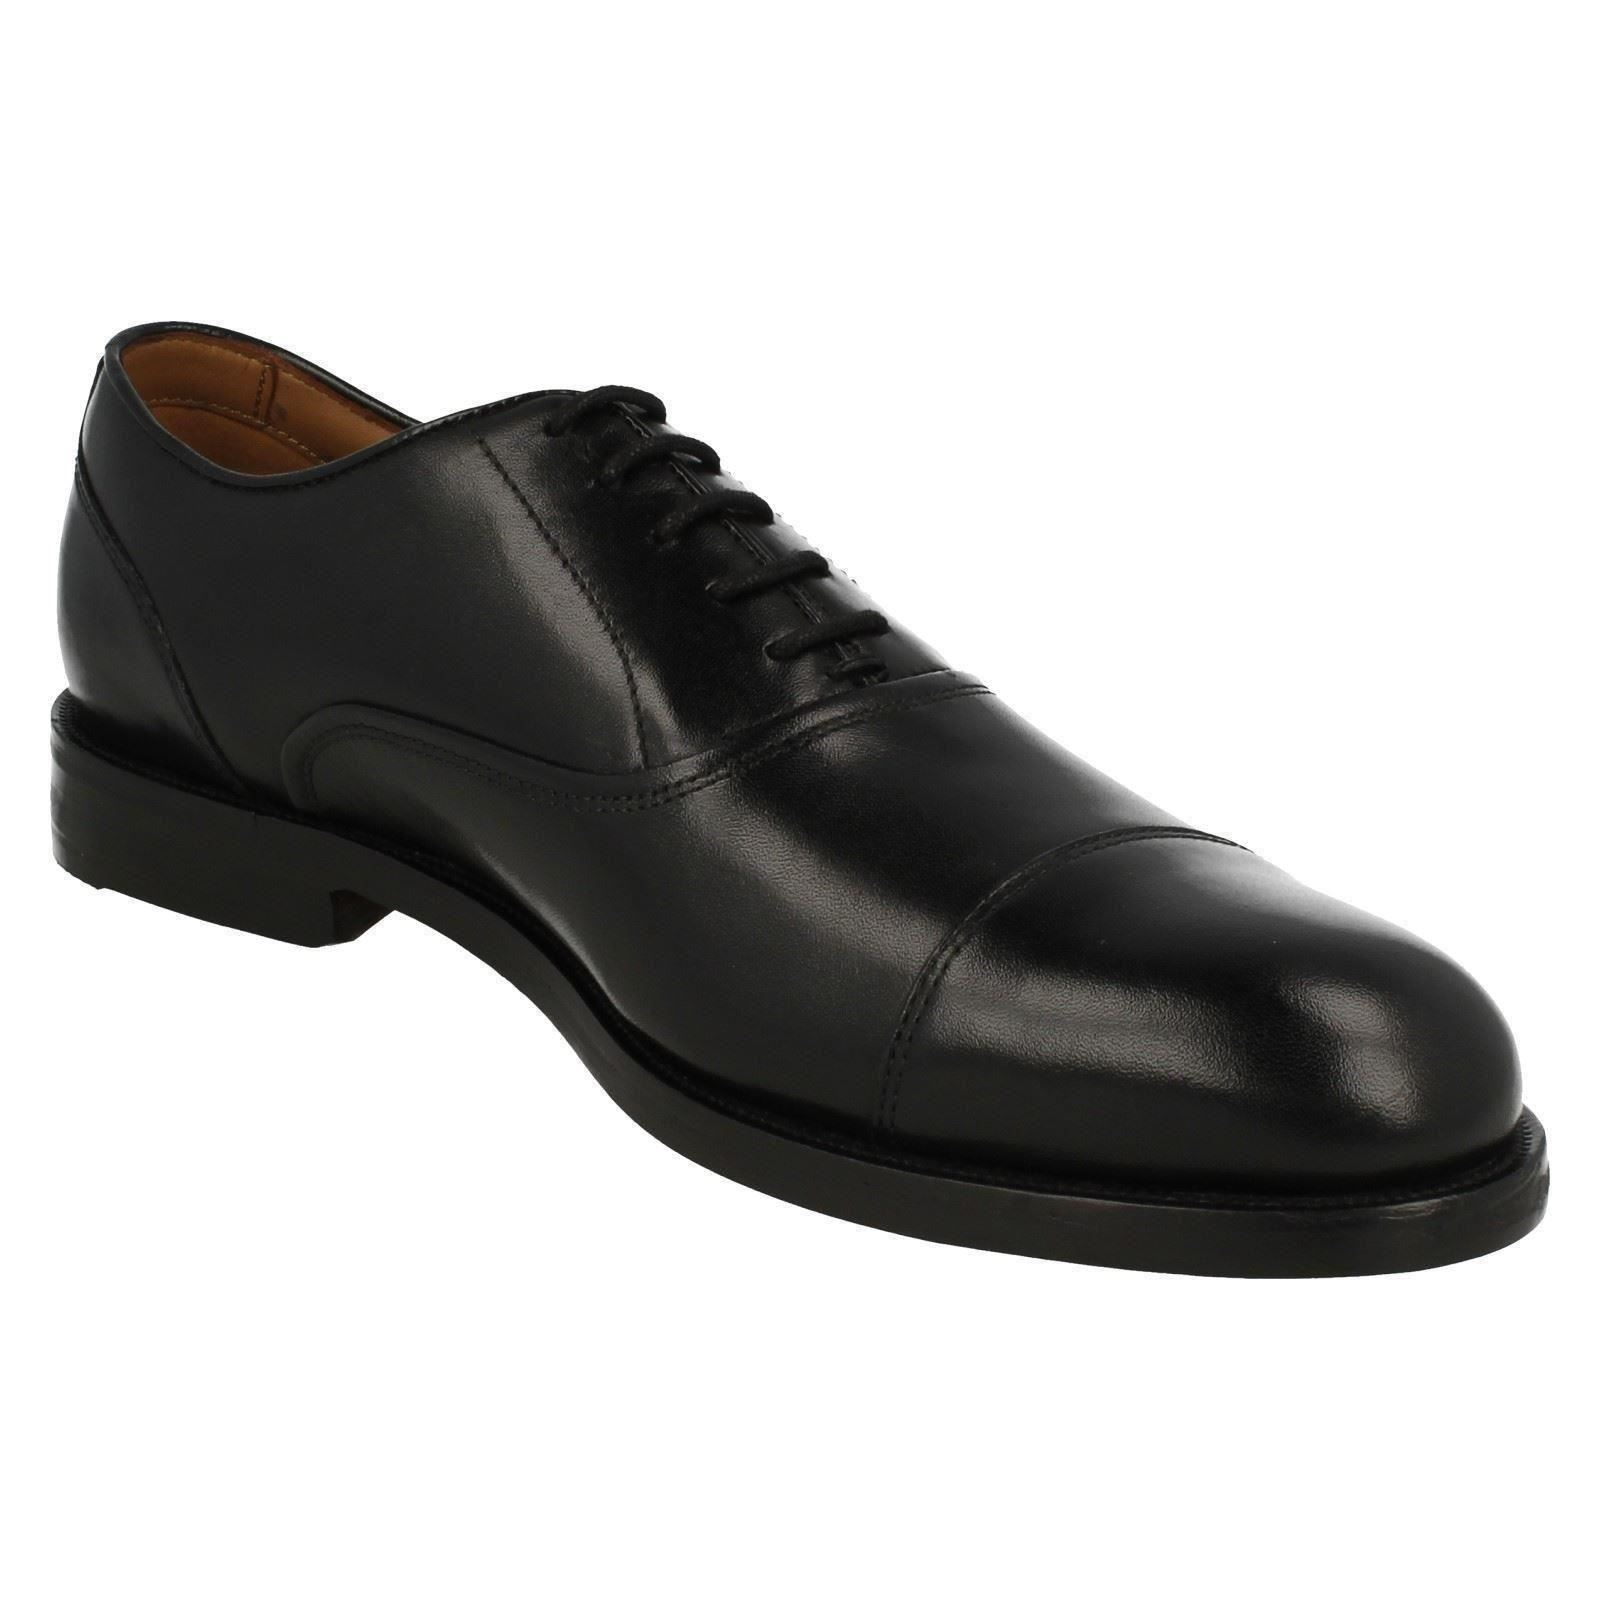 Men's Clarks Formal Lace Up Shoes Coling Boss